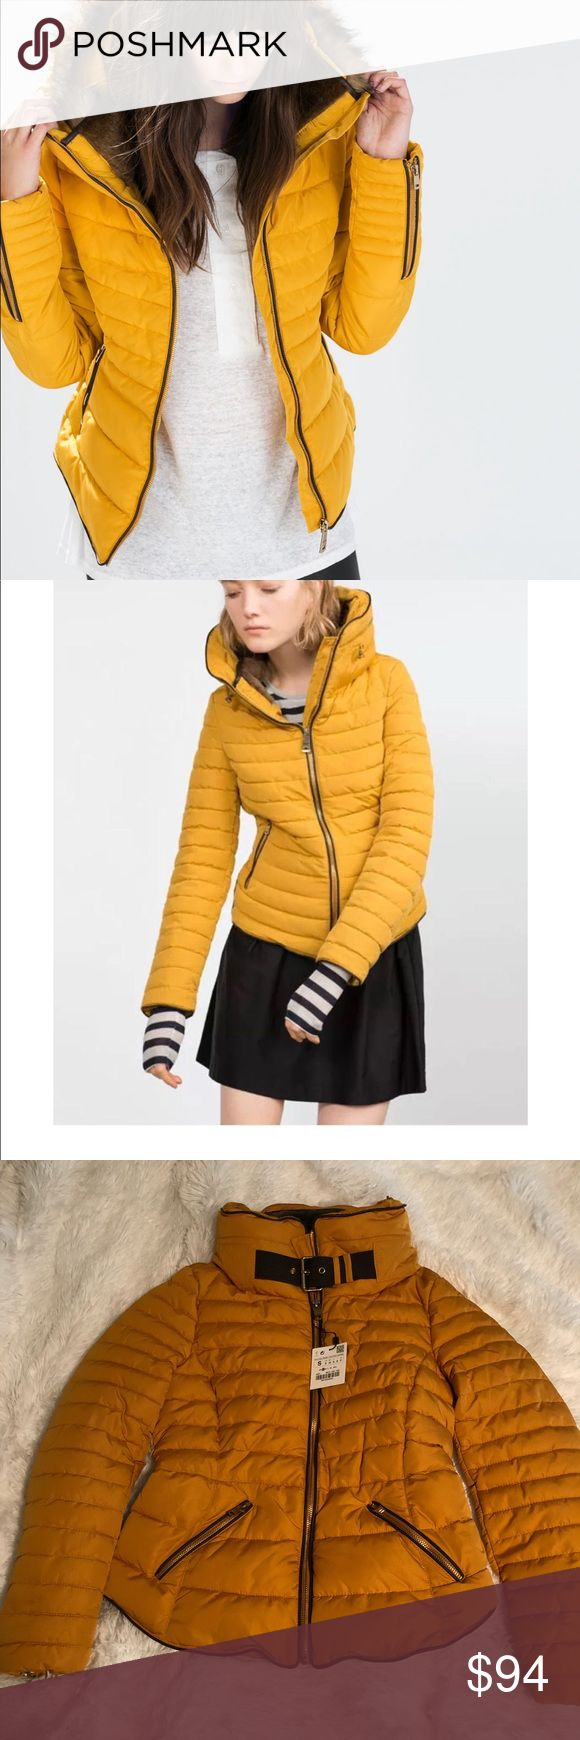 BNWT Zara Mustard Puffer Jacket Zara Basics Outerwear Mustard Puffer Jacket. Faux fur lining inside collar. Size small. Brand new with tags. 100% Authentic. Perfect for Fall and Winter! Zara Jackets & Coats Puffers